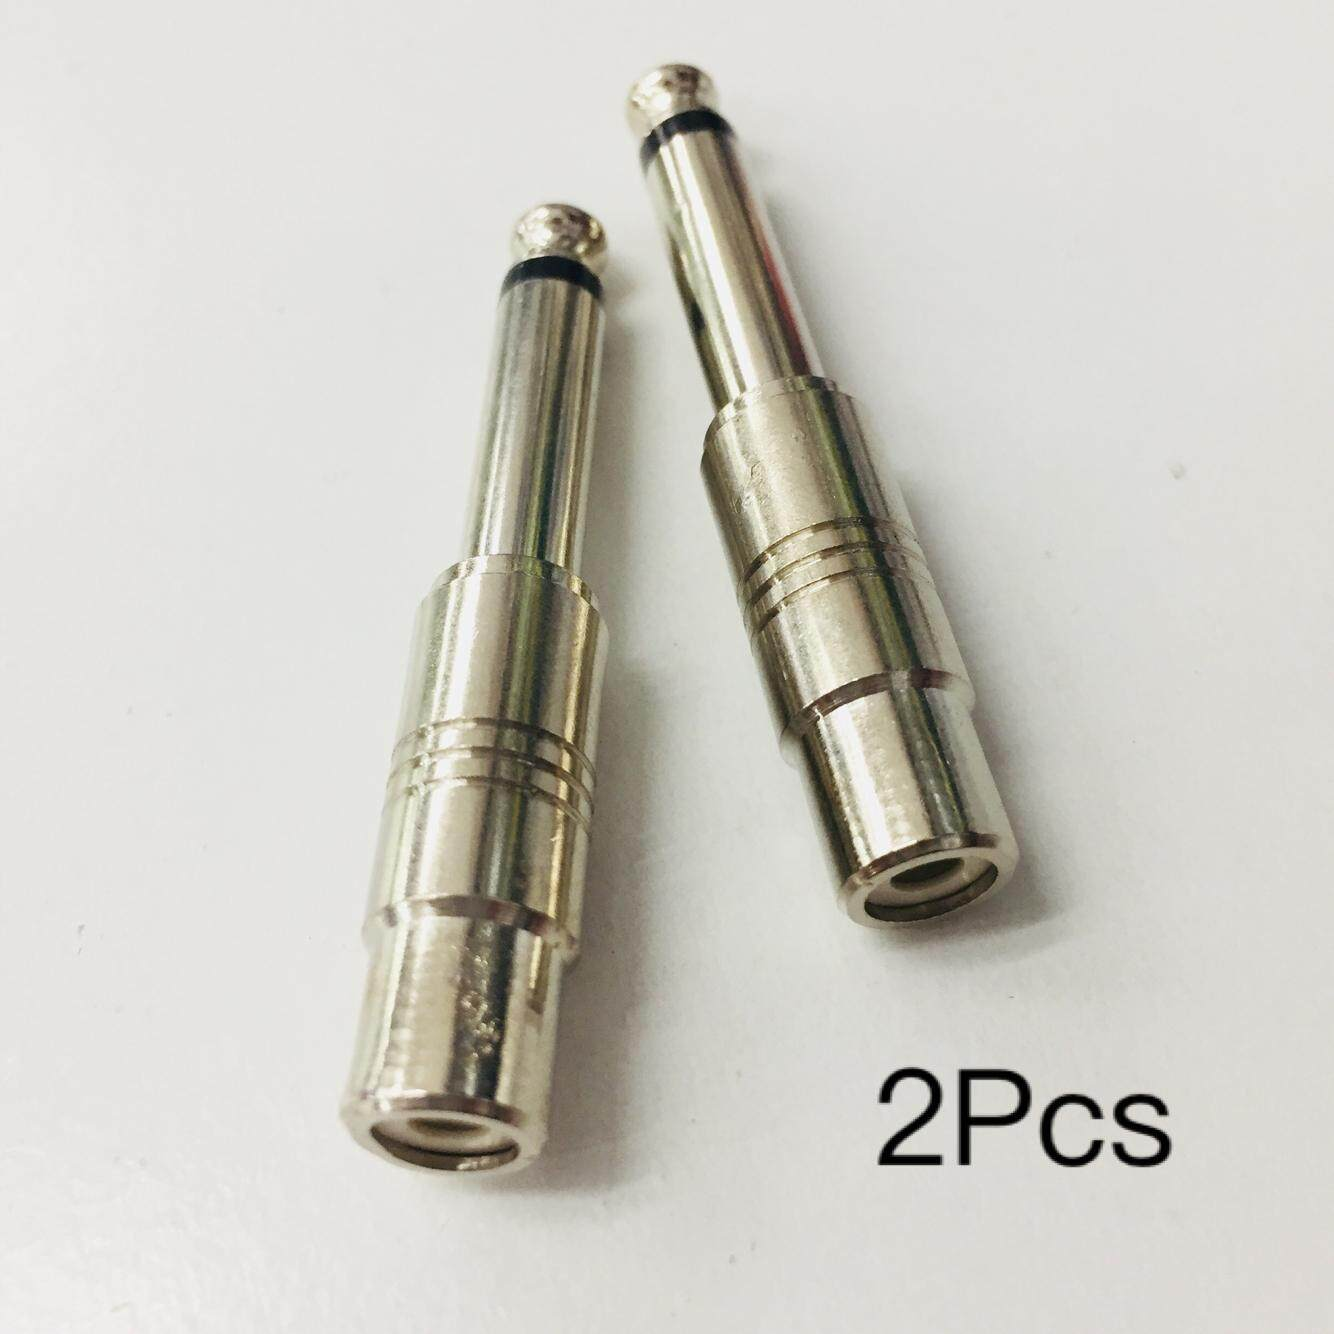 2pcs 6.35mm 1/4inch Male Mono Plug To RCA Female Audio Adapter Connector